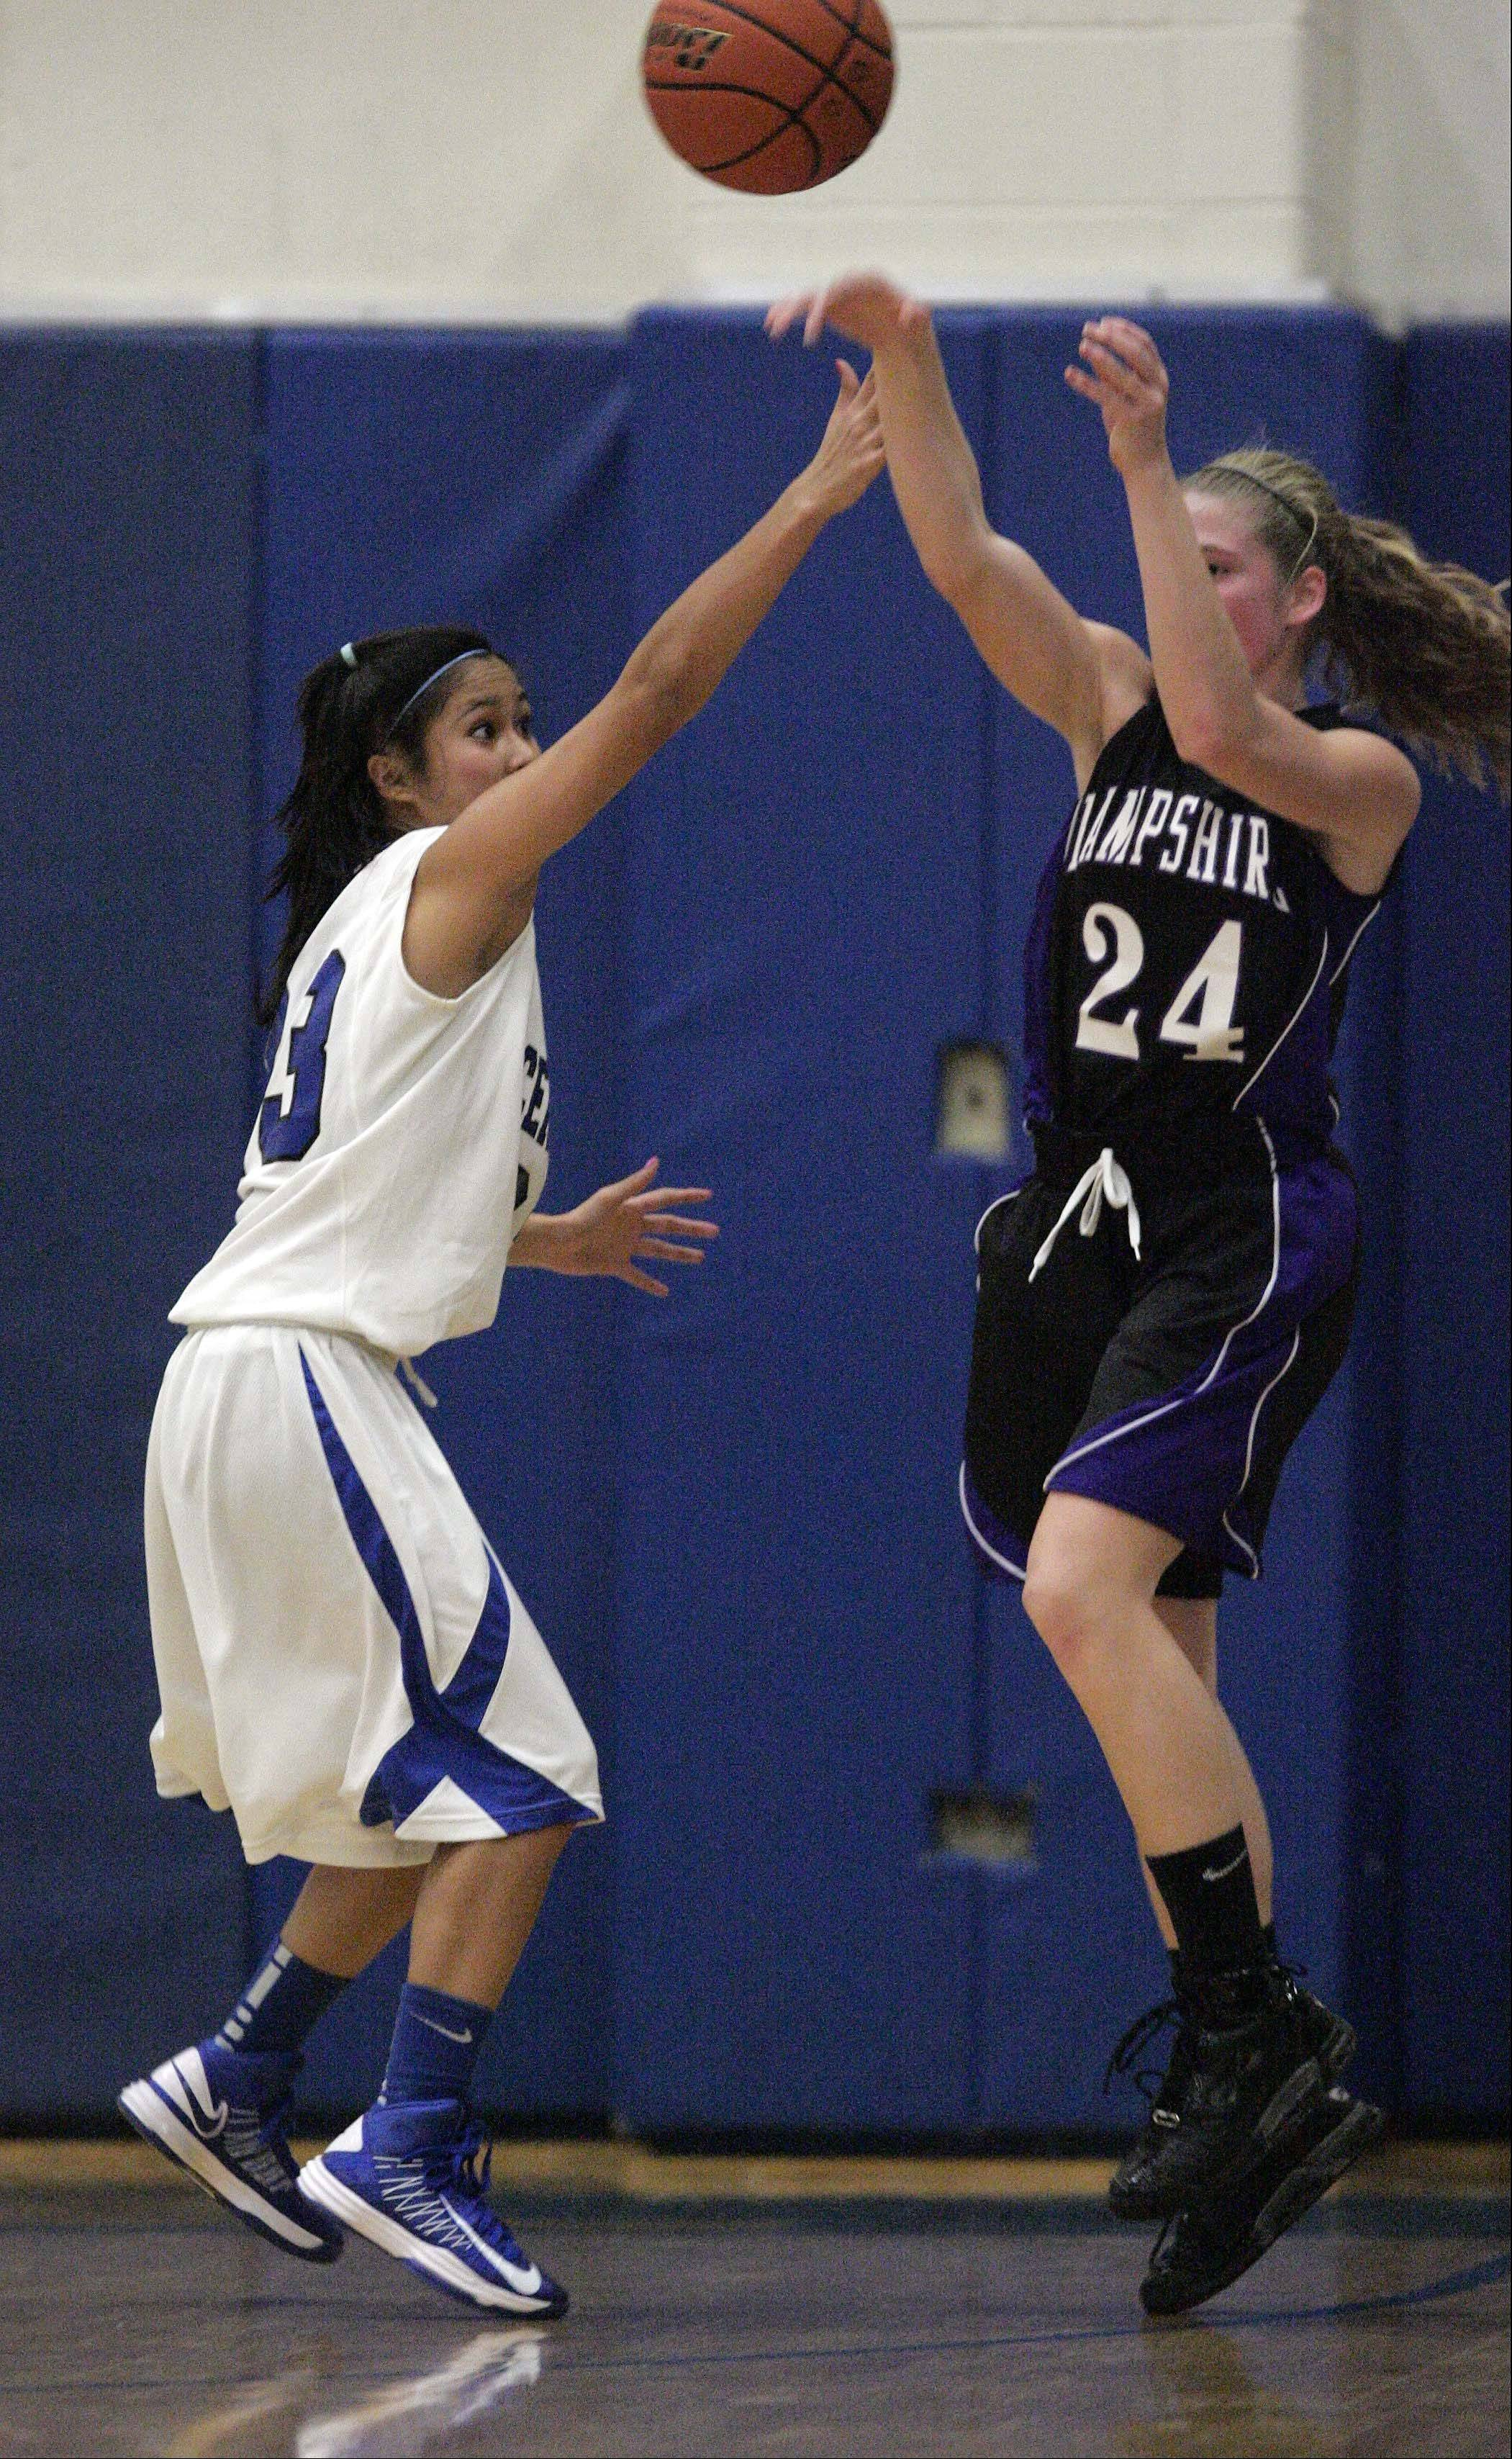 Images from the Hampshire vs. Burlington Central girls basketball game Saturday, December 8, 2012.